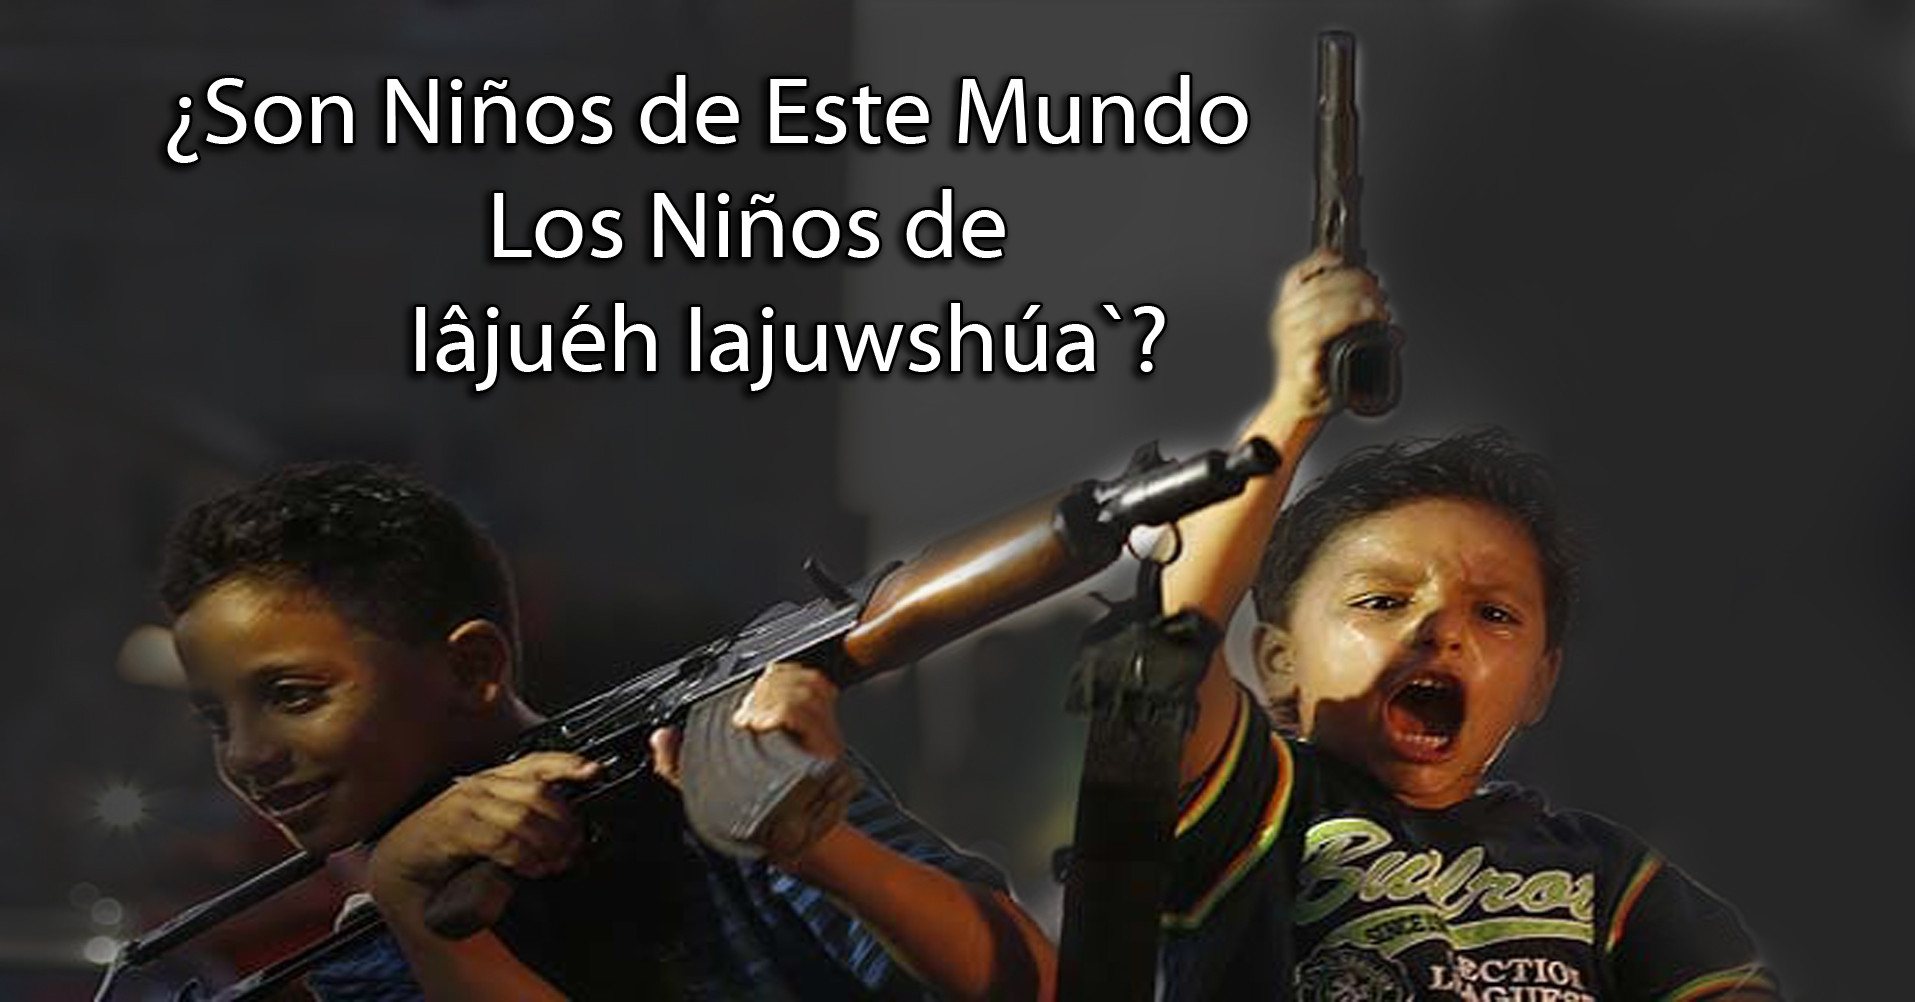 children_gaza_reuters_650_story-espanol.